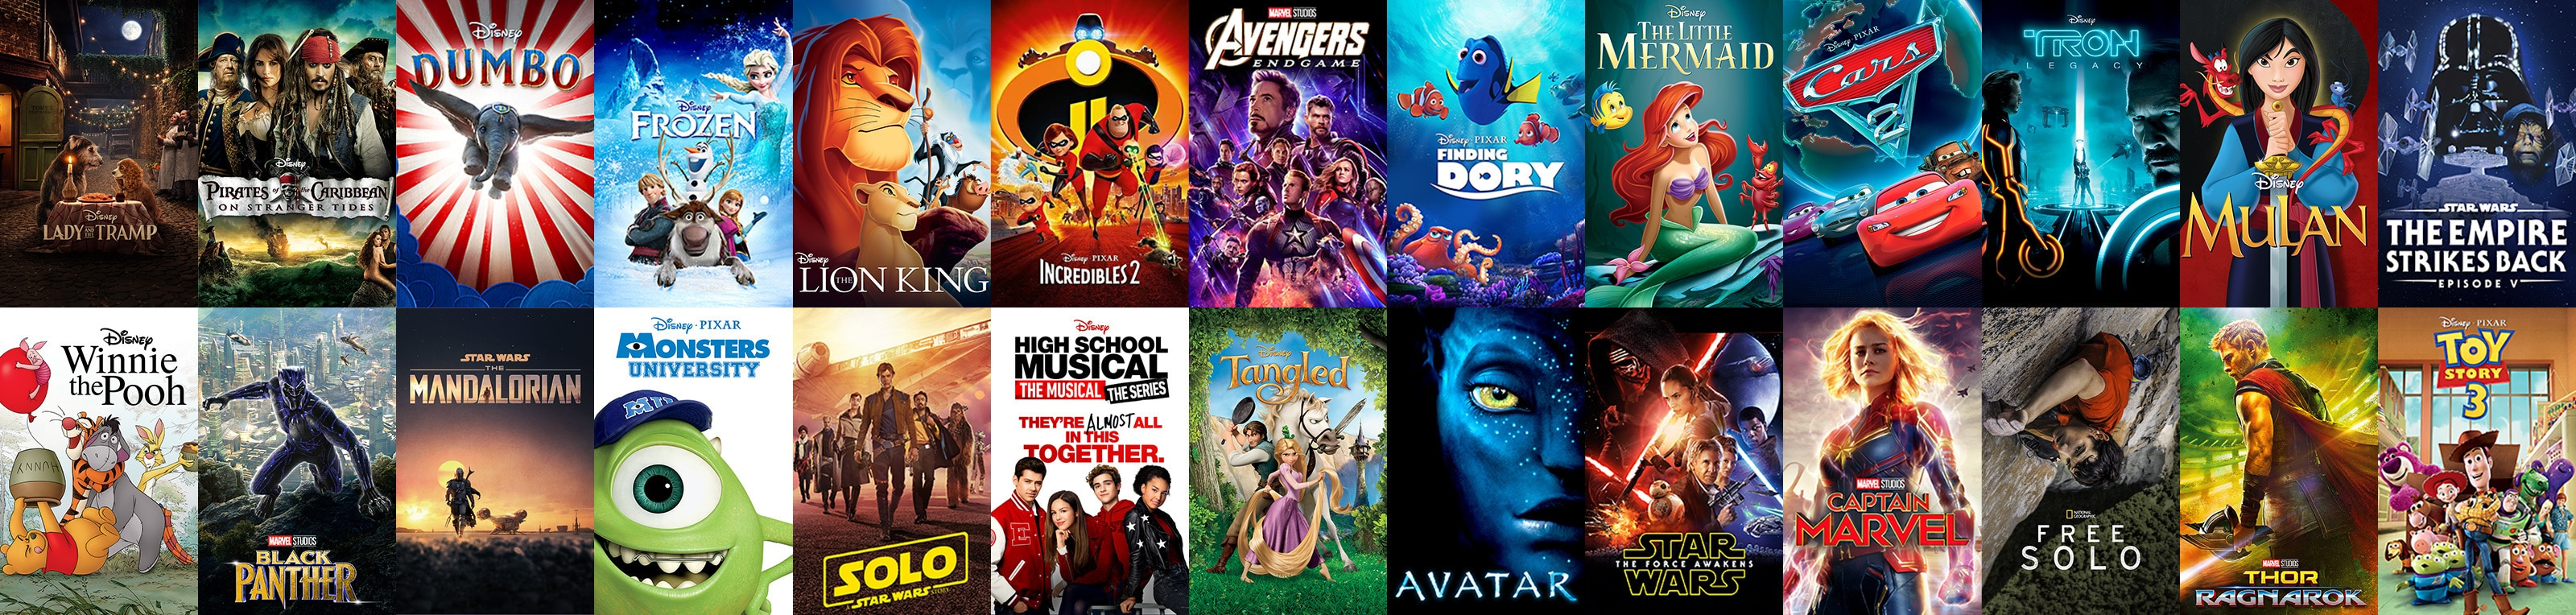 A selection of titles available on Disney+